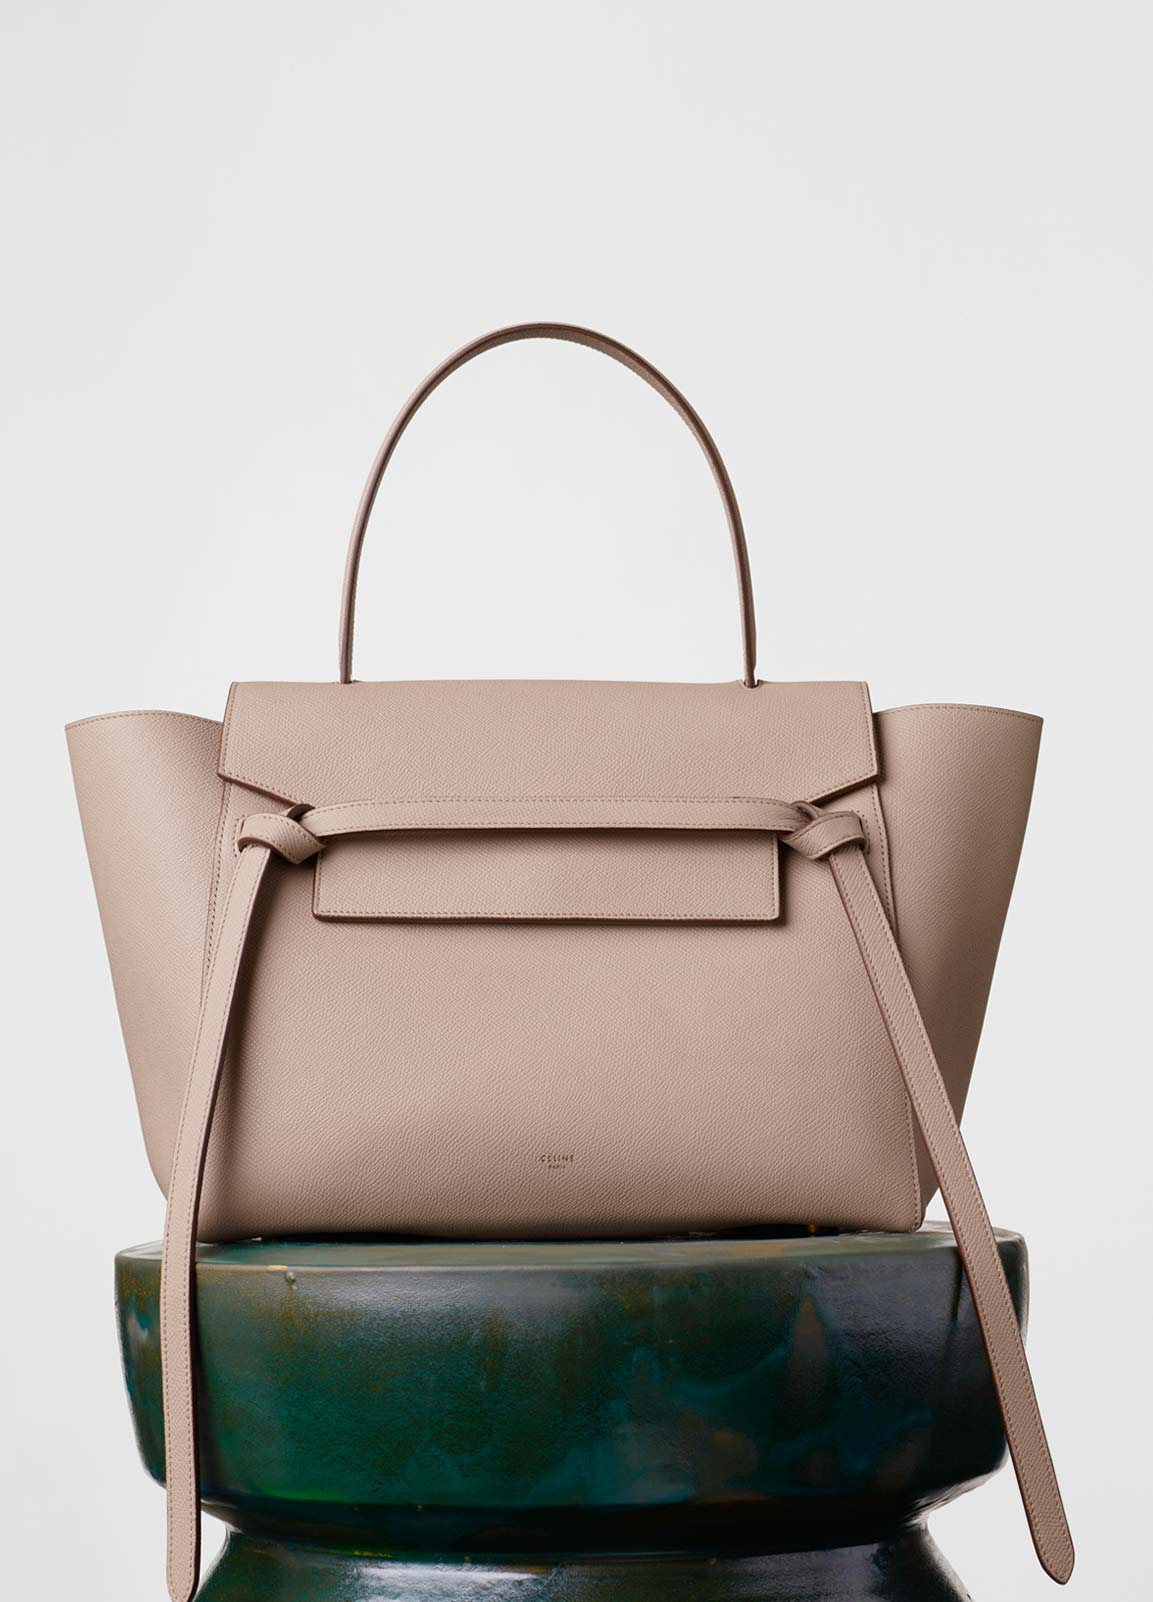 5a7789b543 Celine Winter 2015 Bag Collection Featuring Subtropical Shades and ...